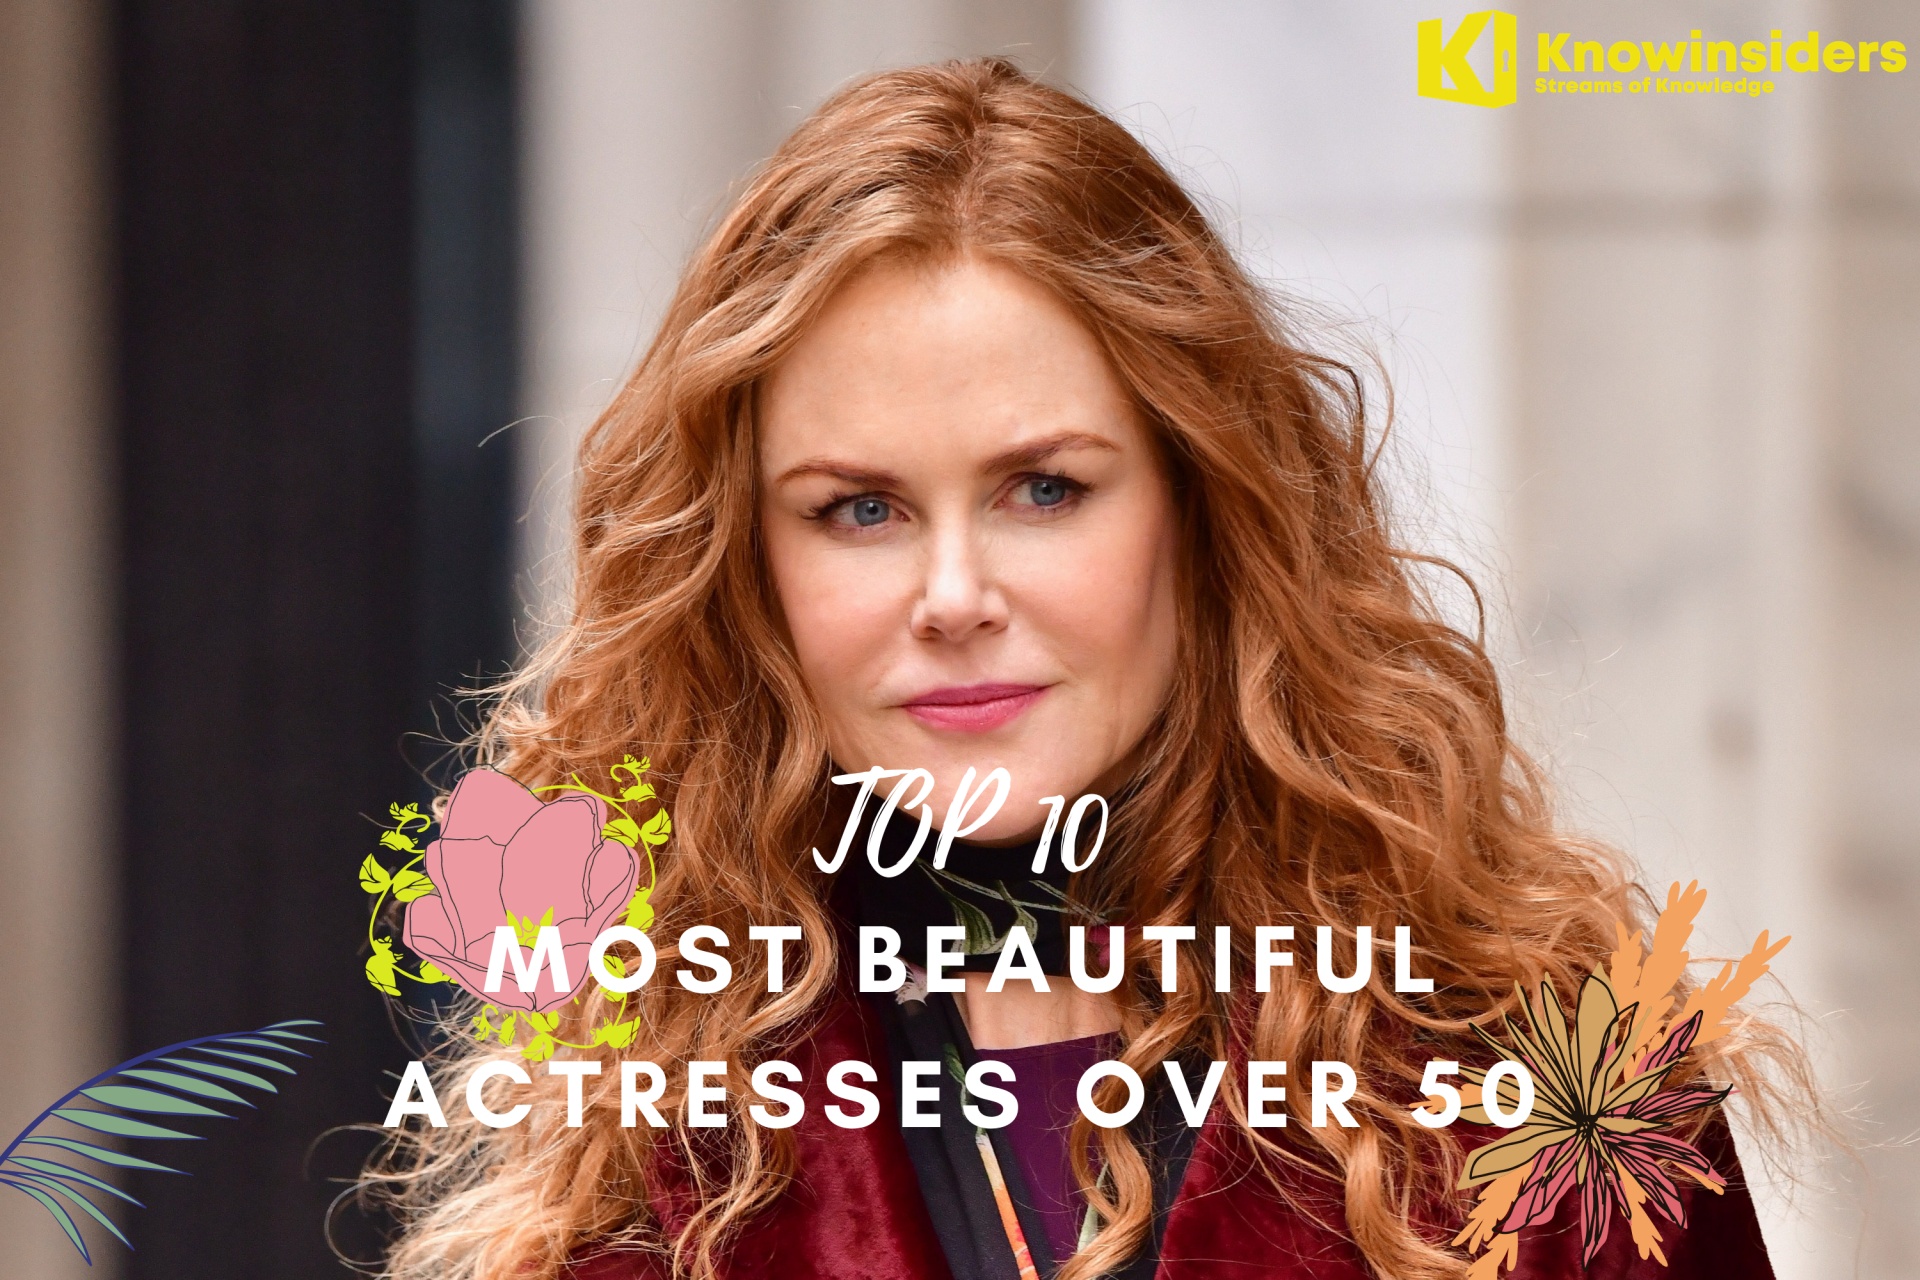 TOP 10 Most Beautiful Actresses Over 50